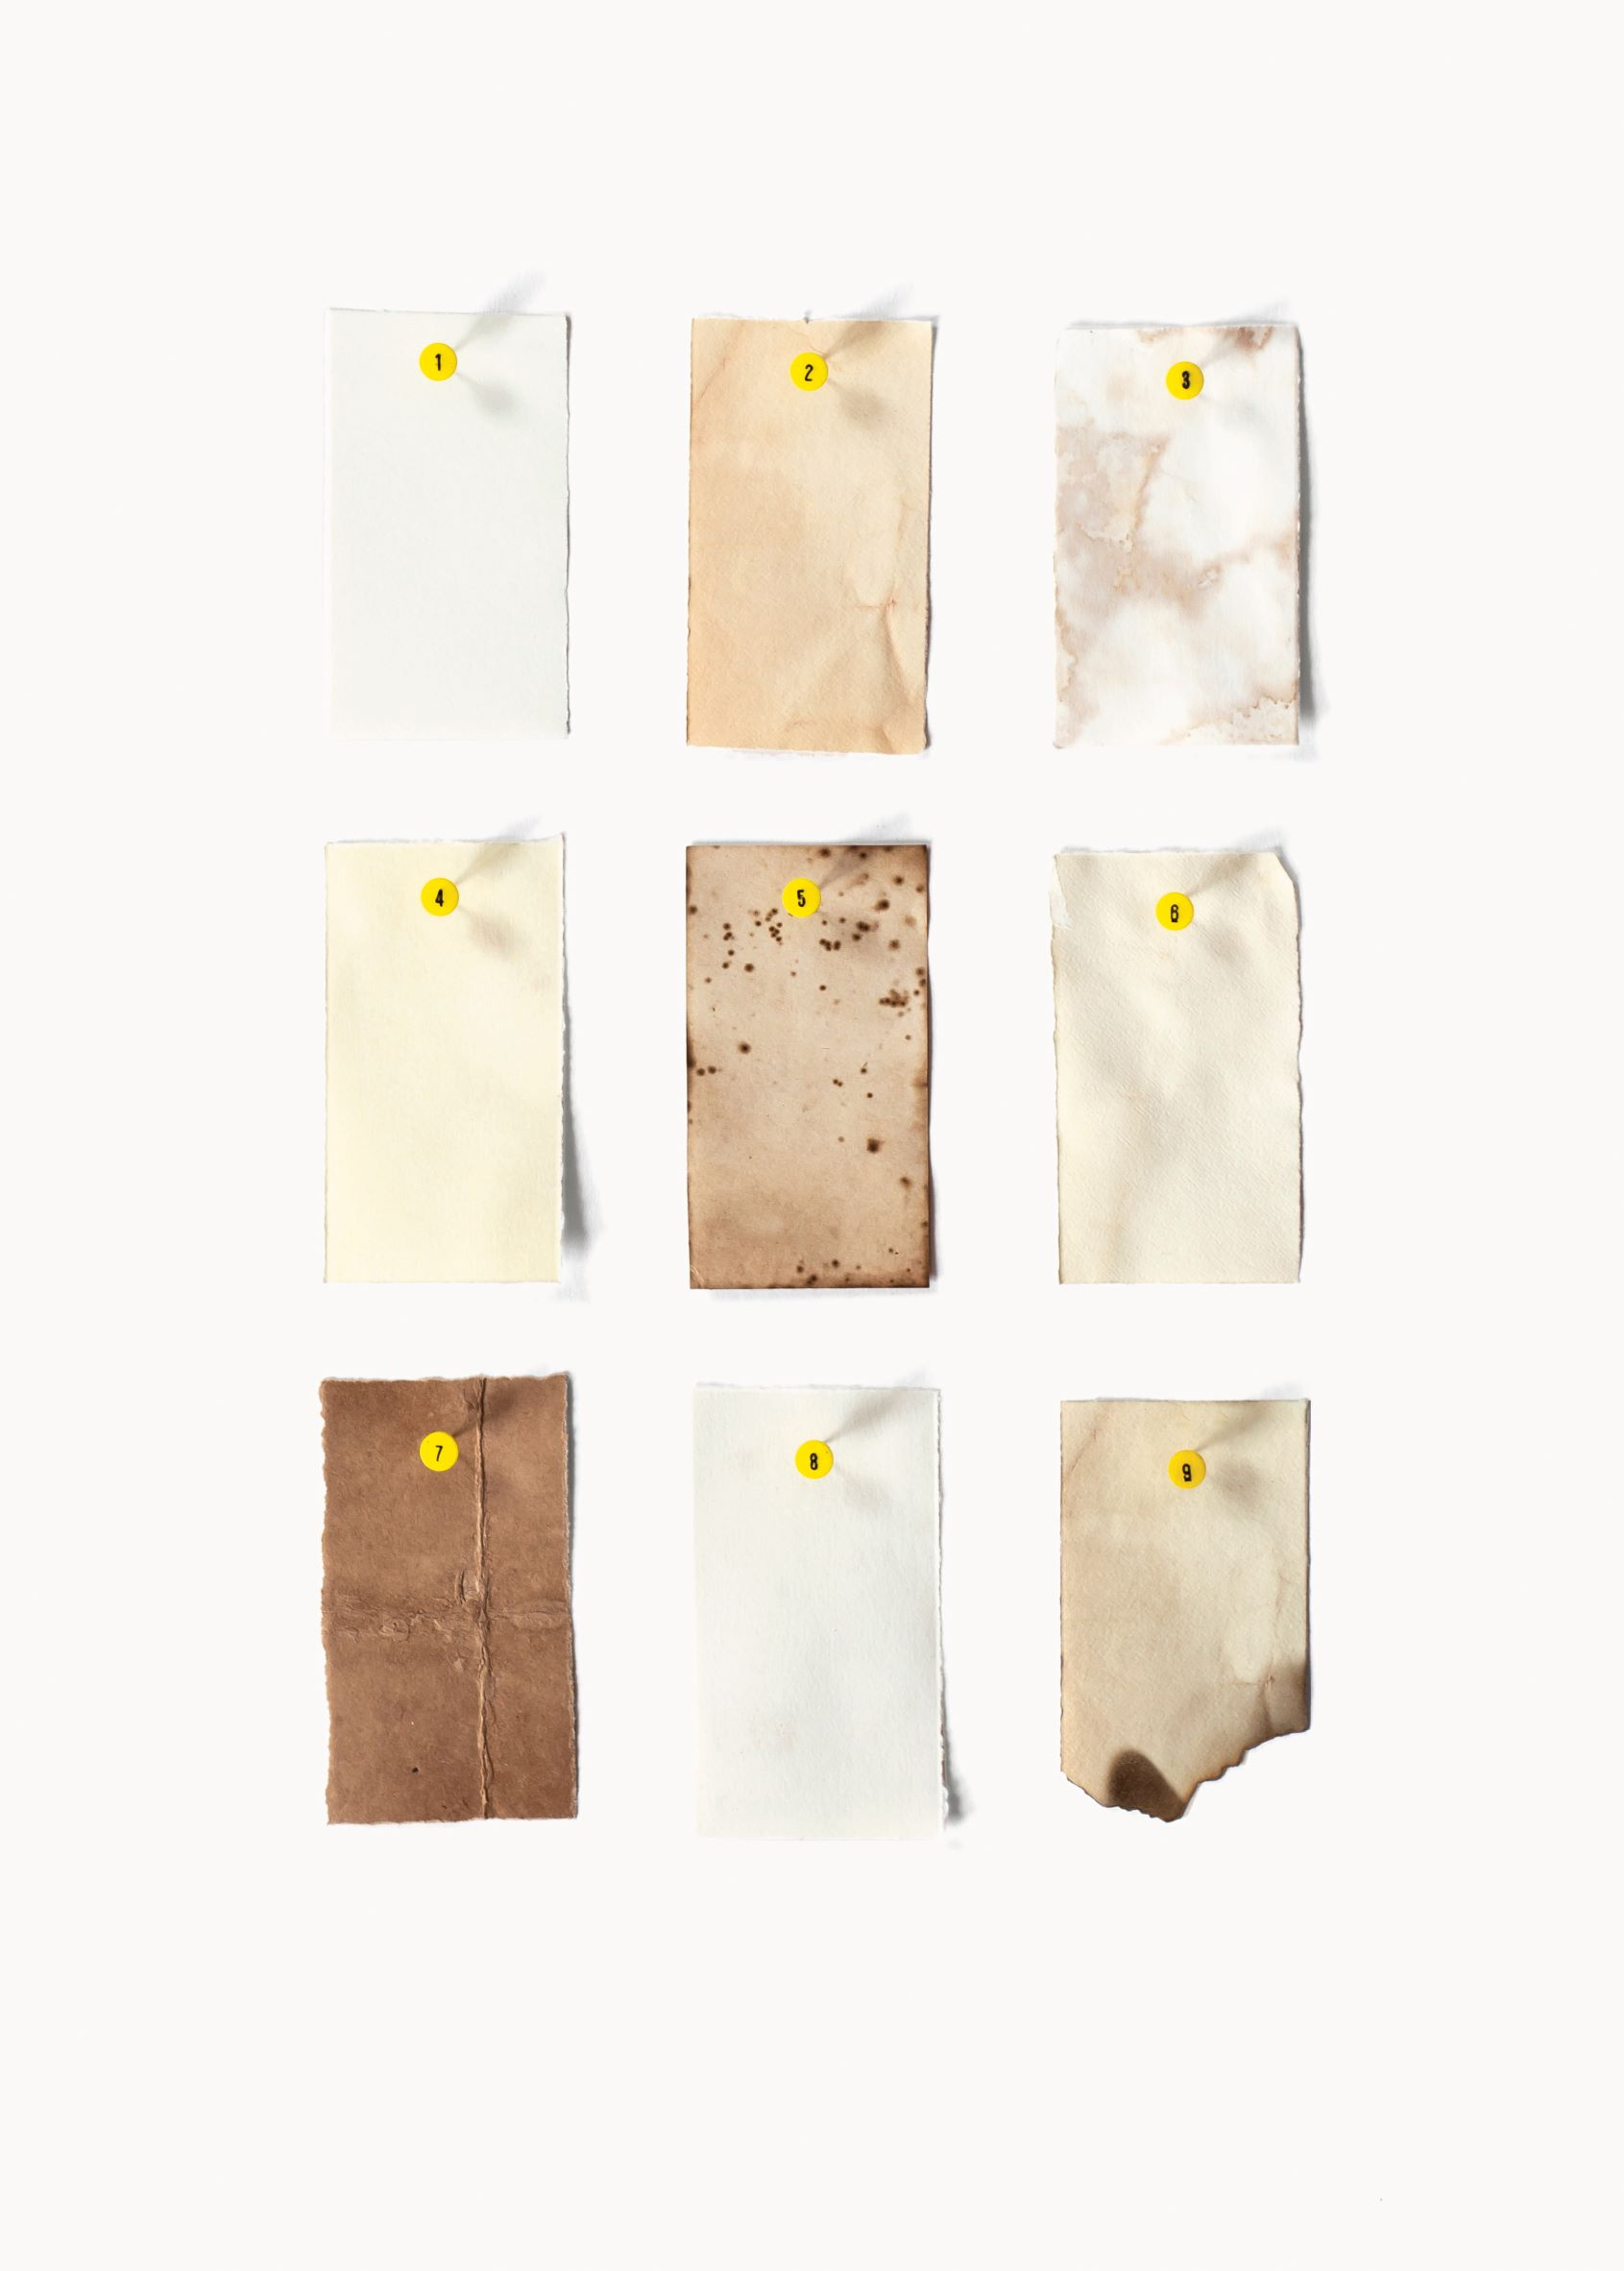 Staining and Aging Paper, photographs by Flora Fricker, collection of Annie Atkins. Left to right, top to bottom: (1) No aging (2) Tea (3) Bleach and lemon juice (4) Brasso Polish (5) Potassium permanganate crystals (6) Coffee (7) Balsamic vinegar, cooked in the oven for ten minutes (8) Red wine vinegar (9) Burnt with match